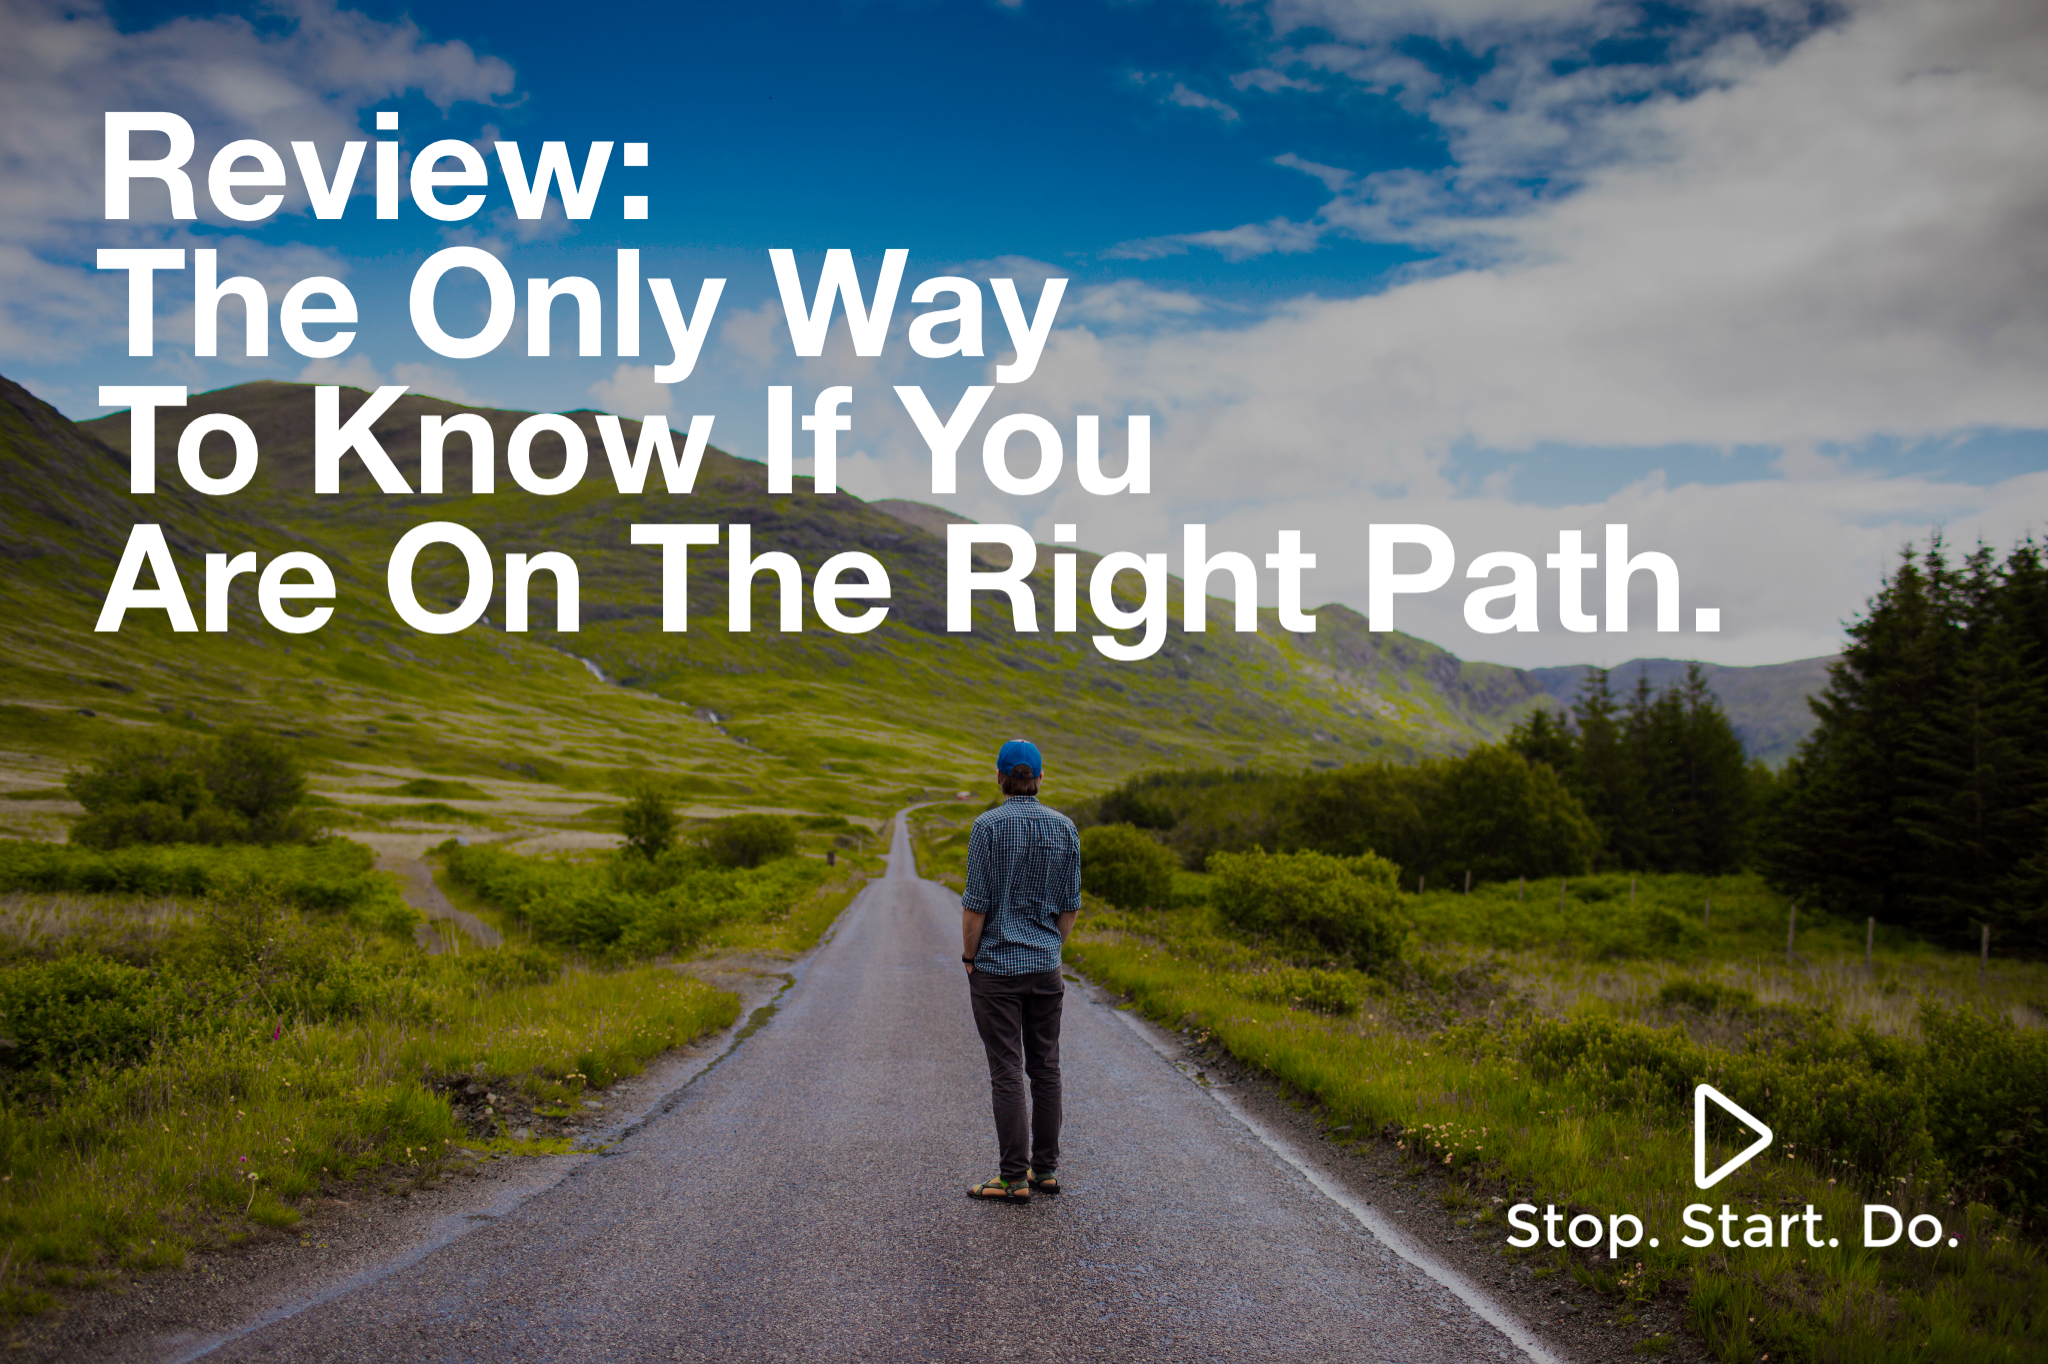 Review: Are you on the right path? Man on Road looking standing stop start do